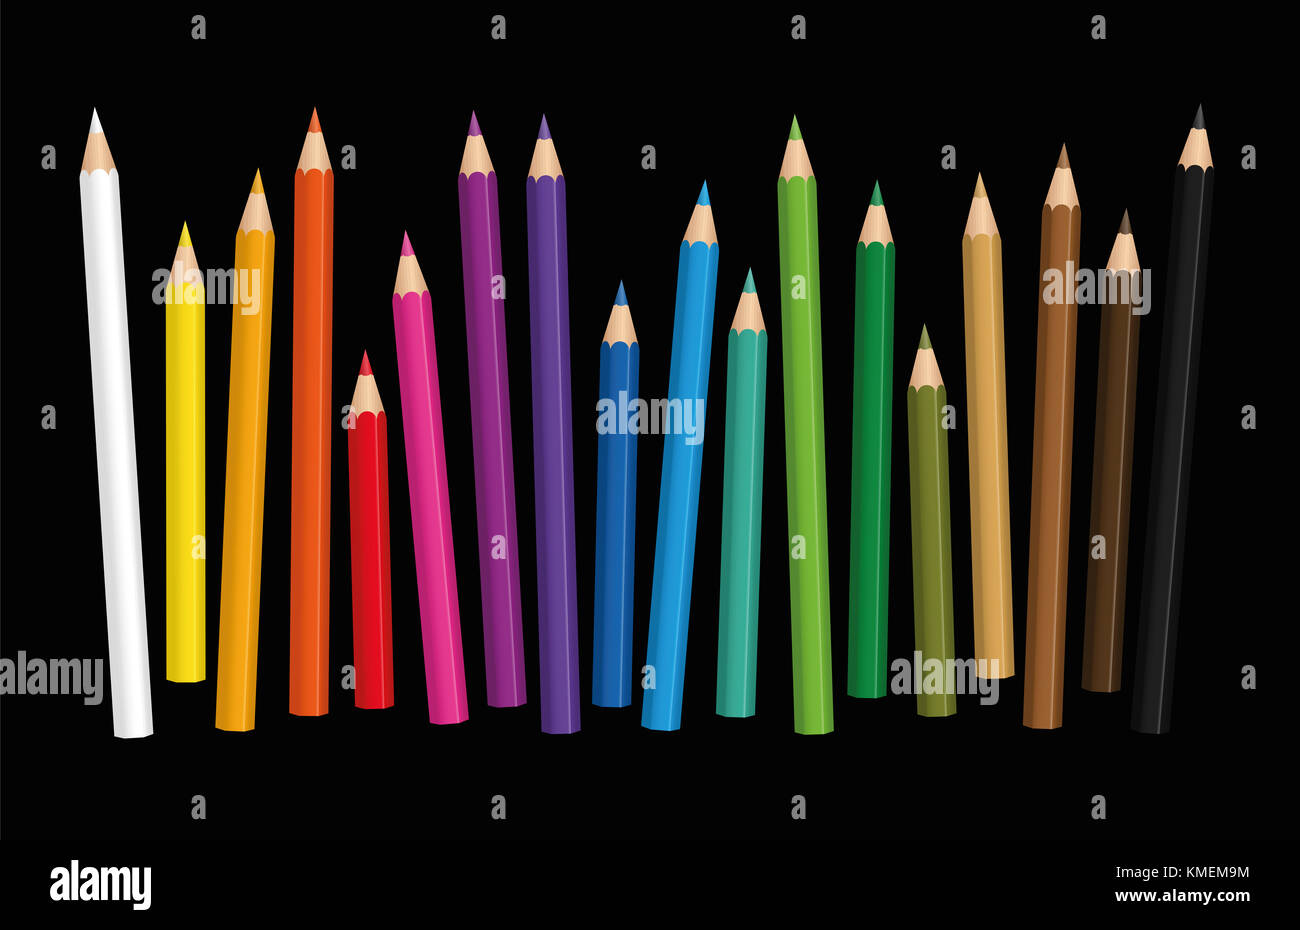 Crayons - loosely arranged colorful set of pencils in different lengths with wood textured tips, upright standing - Stock Image